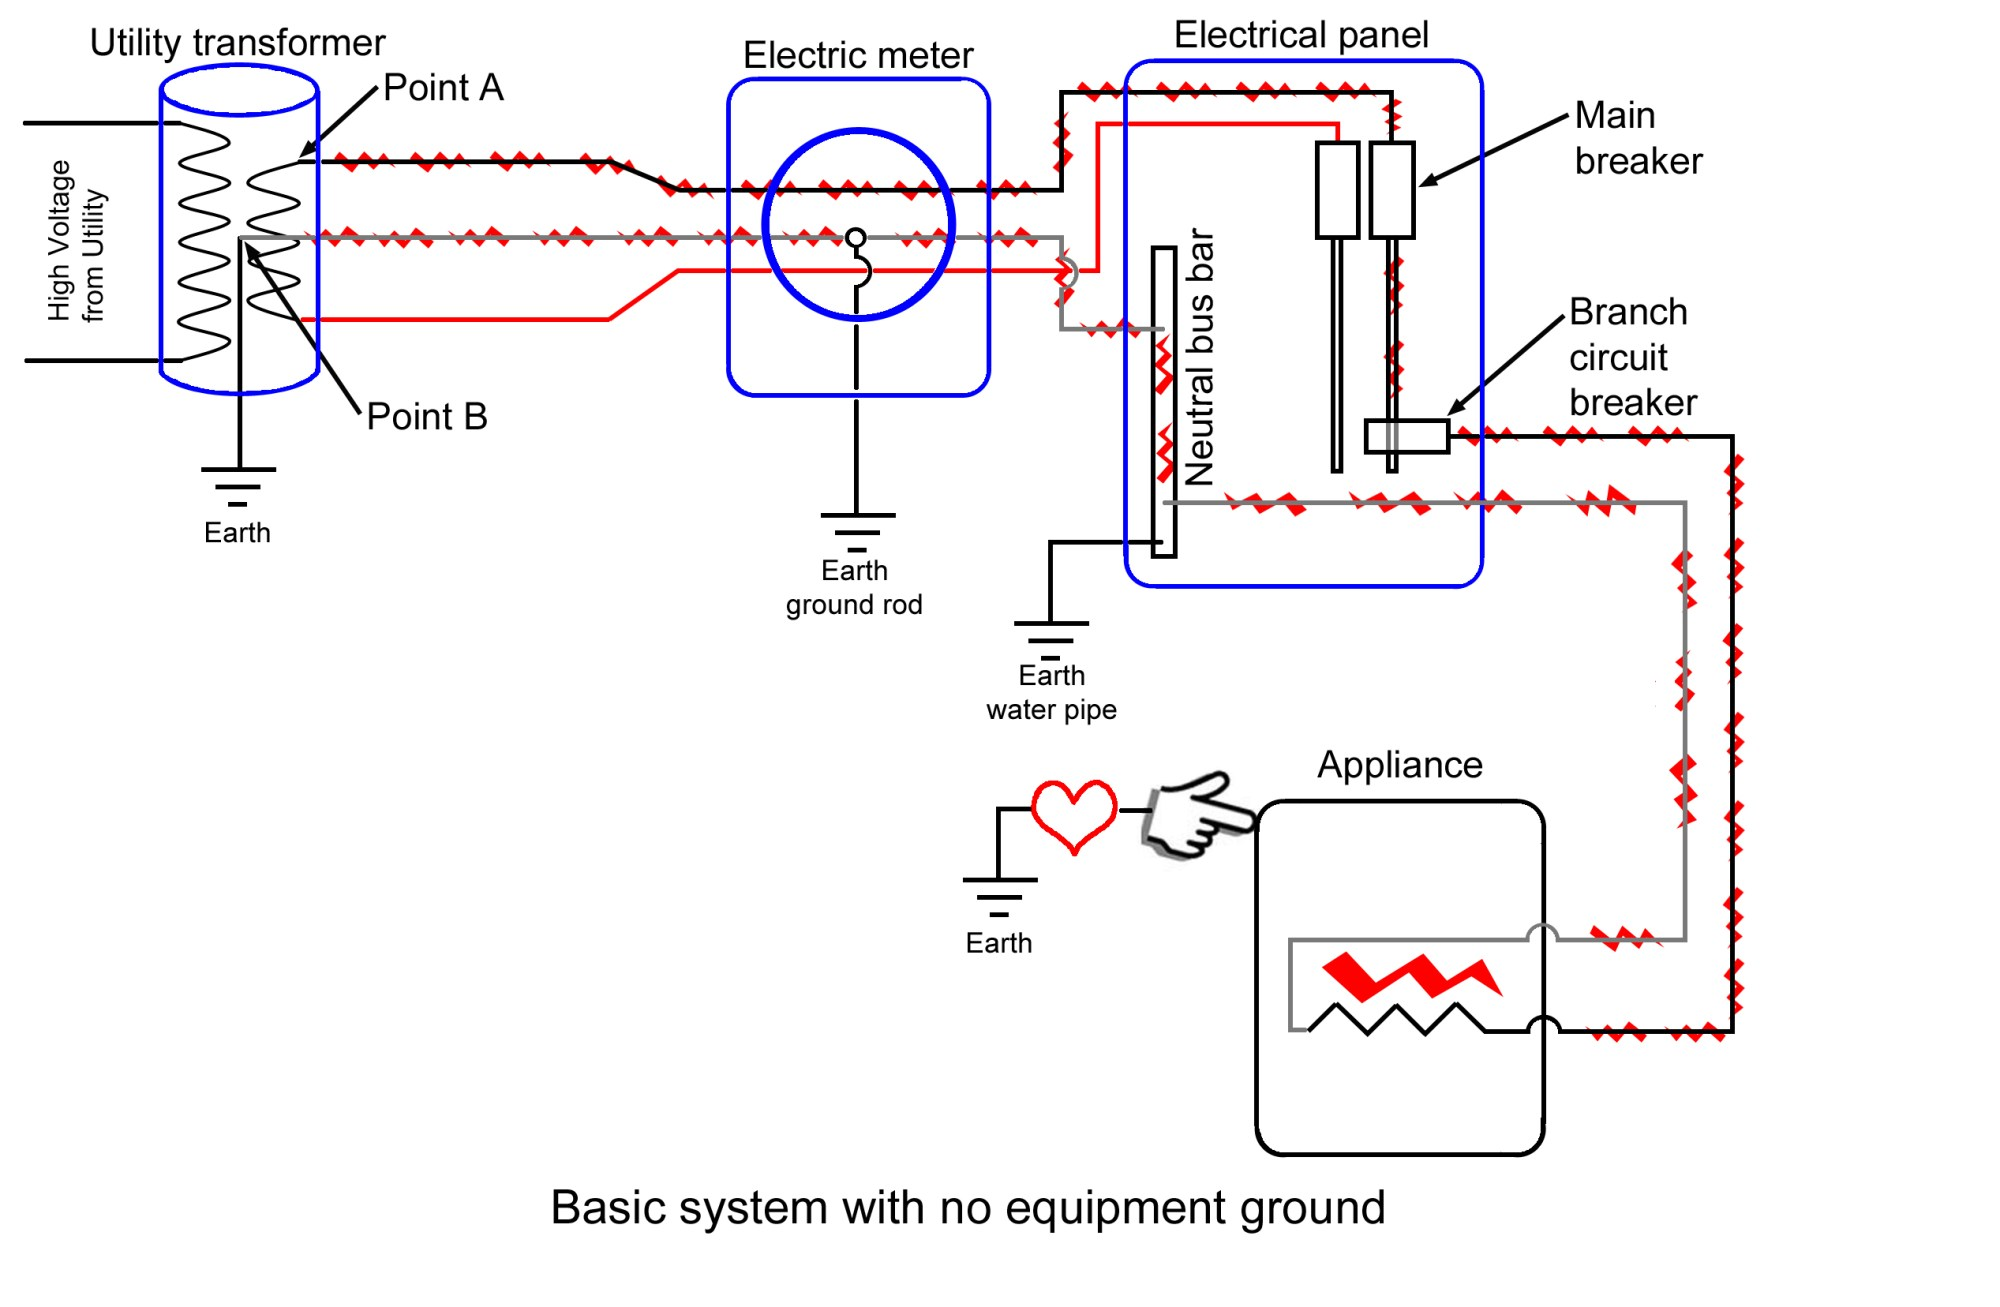 hight resolution of the current goes through the appliance load and then returns through the neutral wire out to point b at the transformer